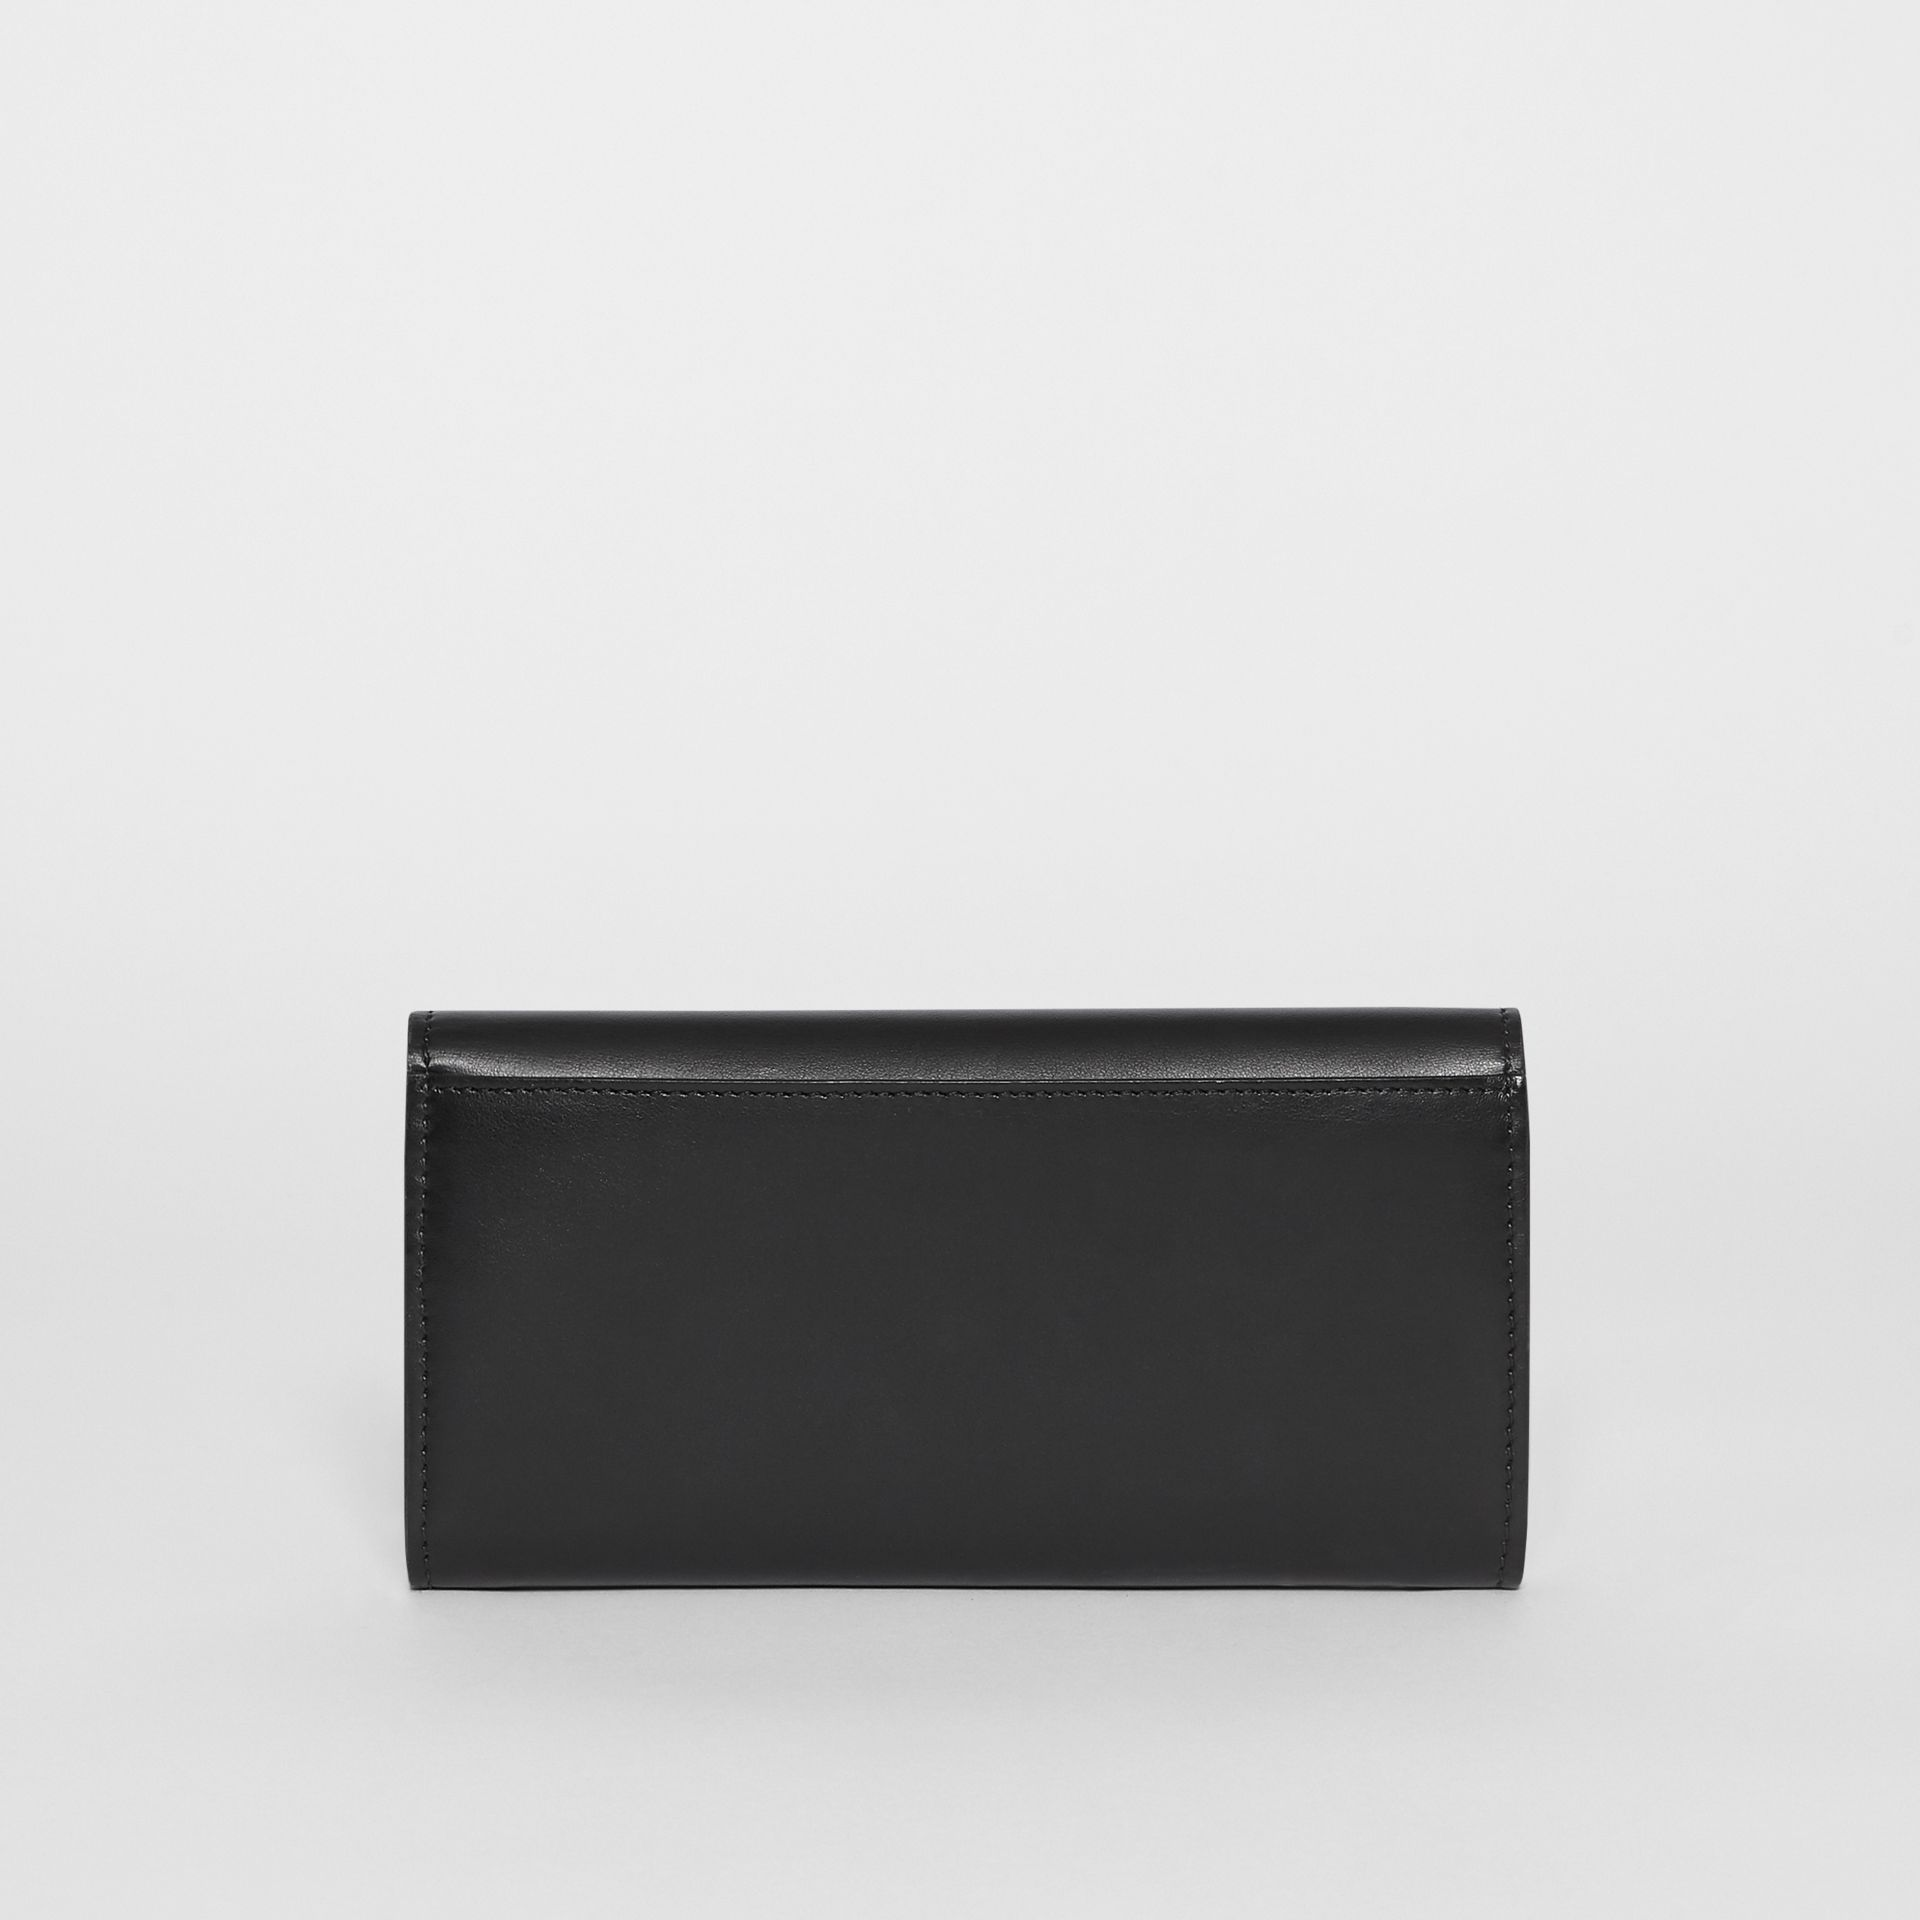 Monogram Motif Leather Continental Wallet in Black - Women | Burberry - gallery image 5